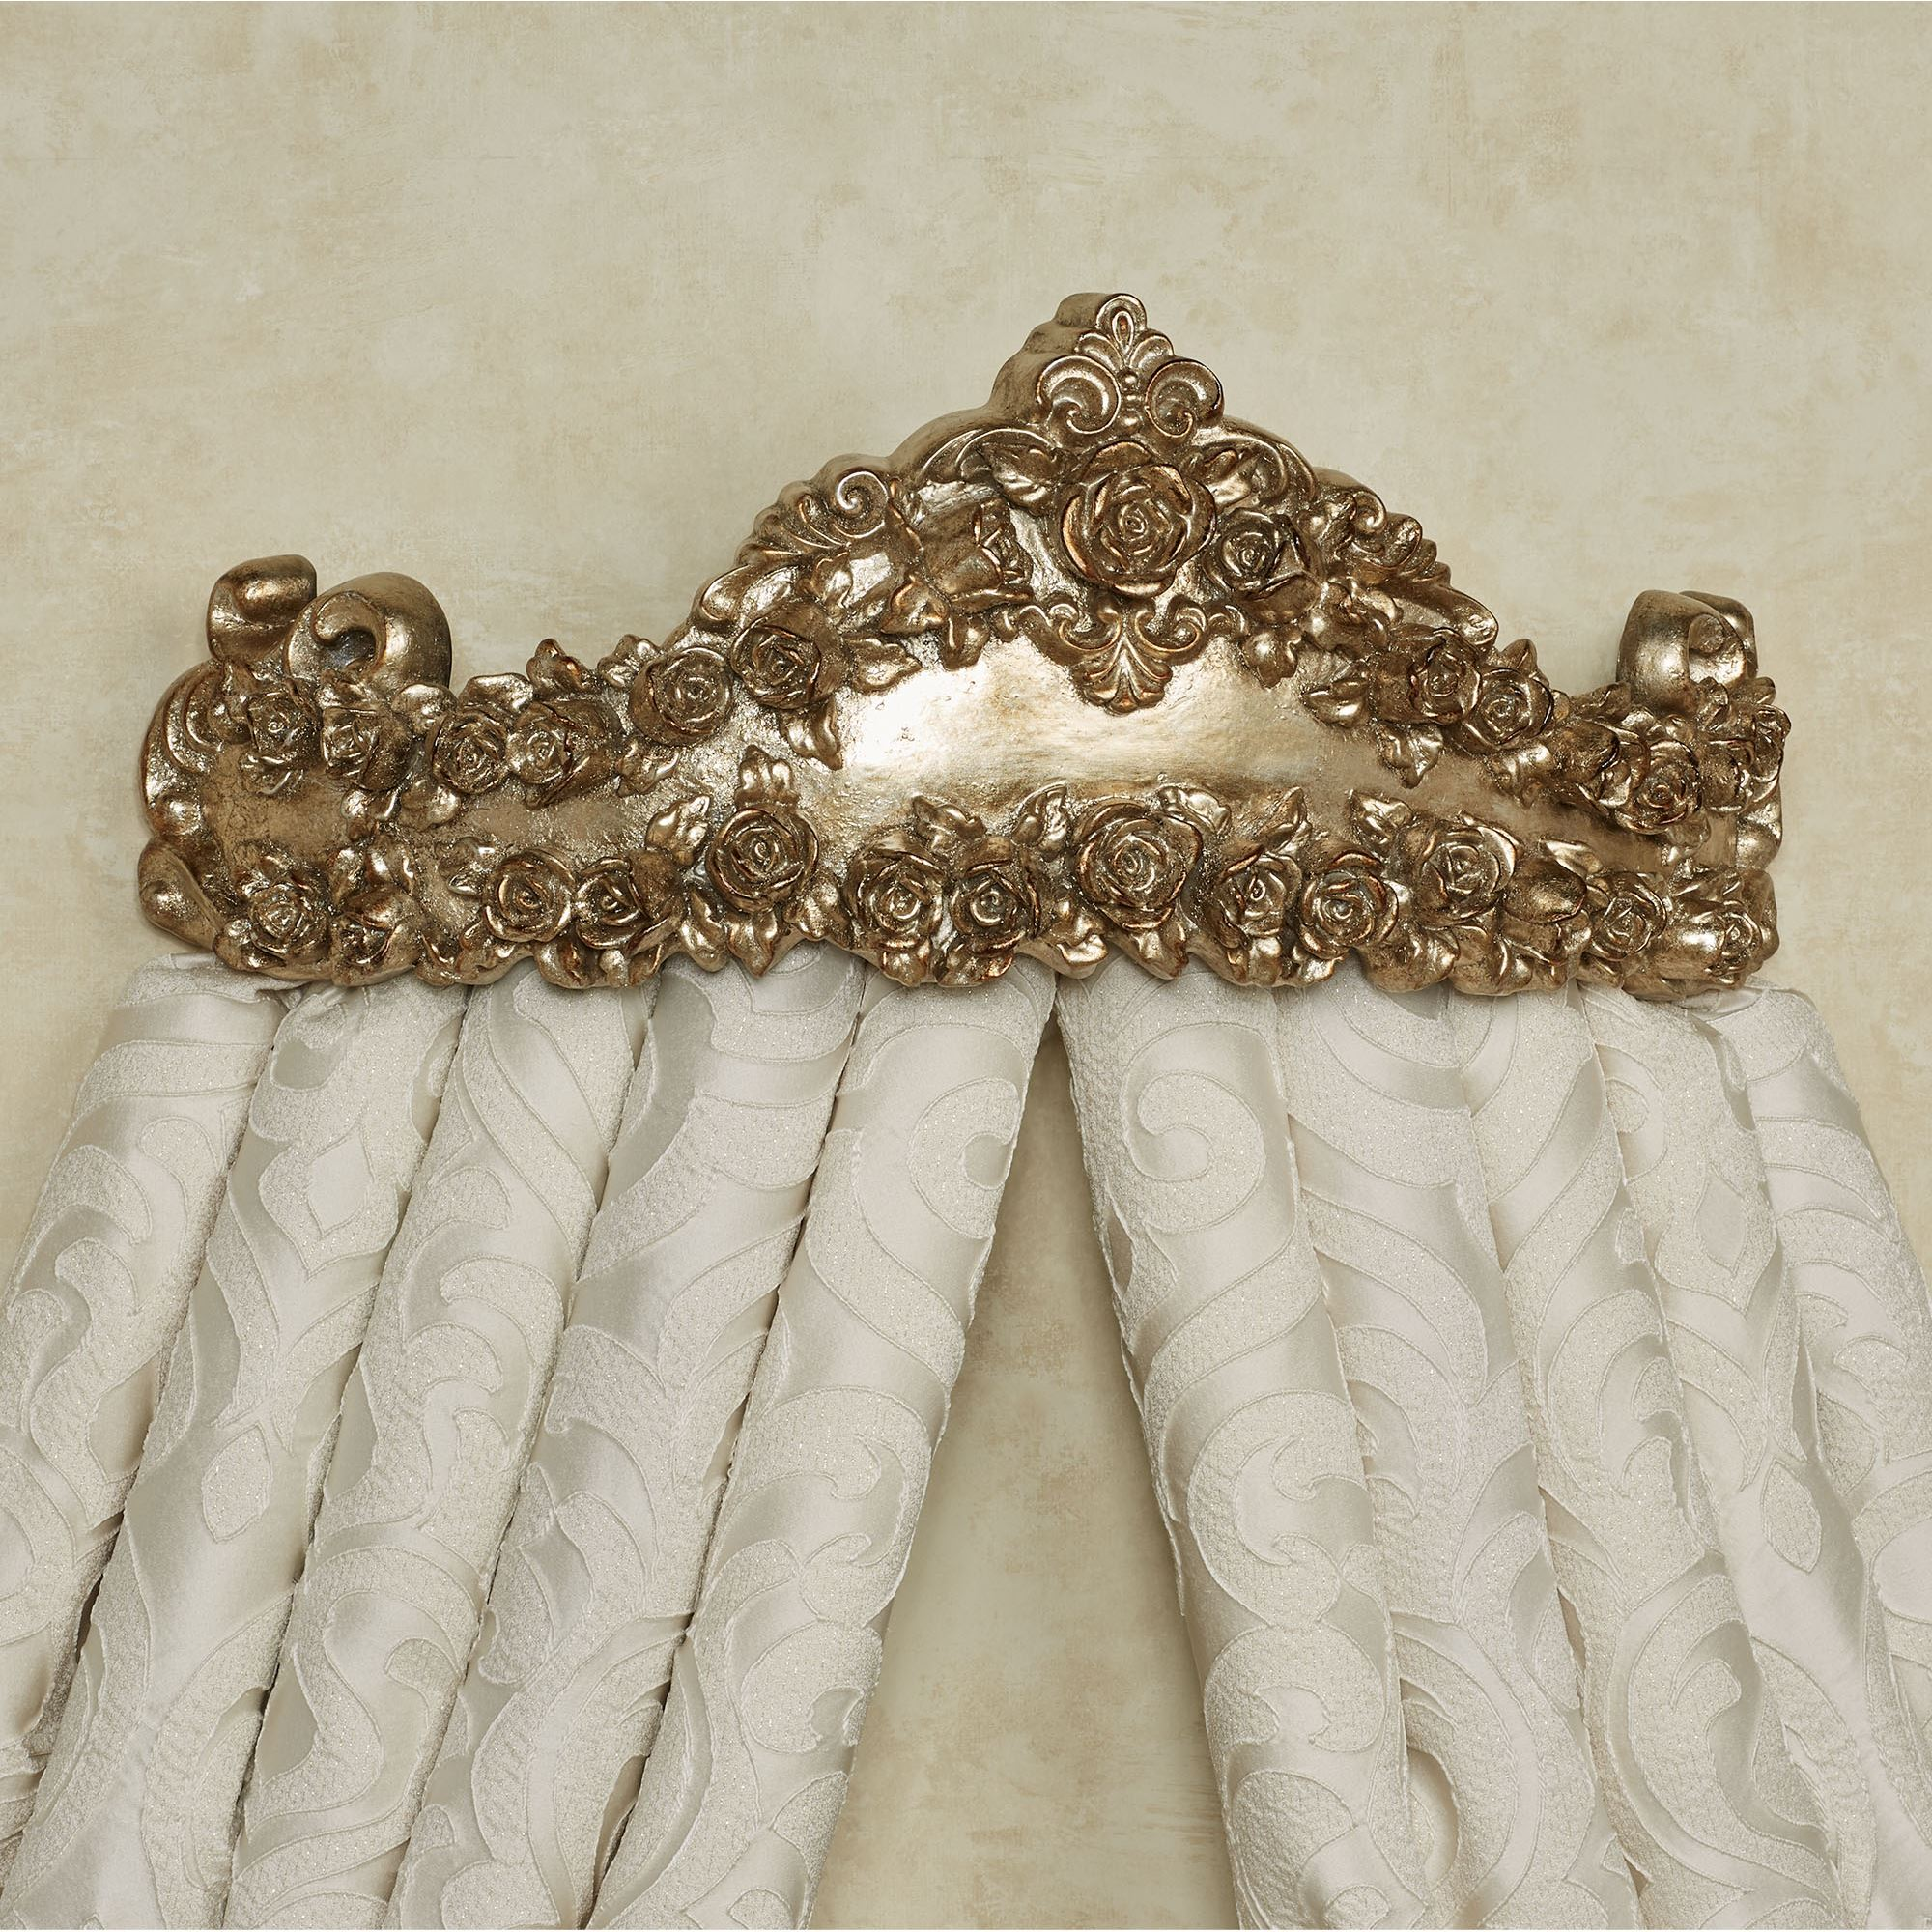 Victoria Rose Antique Gold Wall Teester Bed Crown